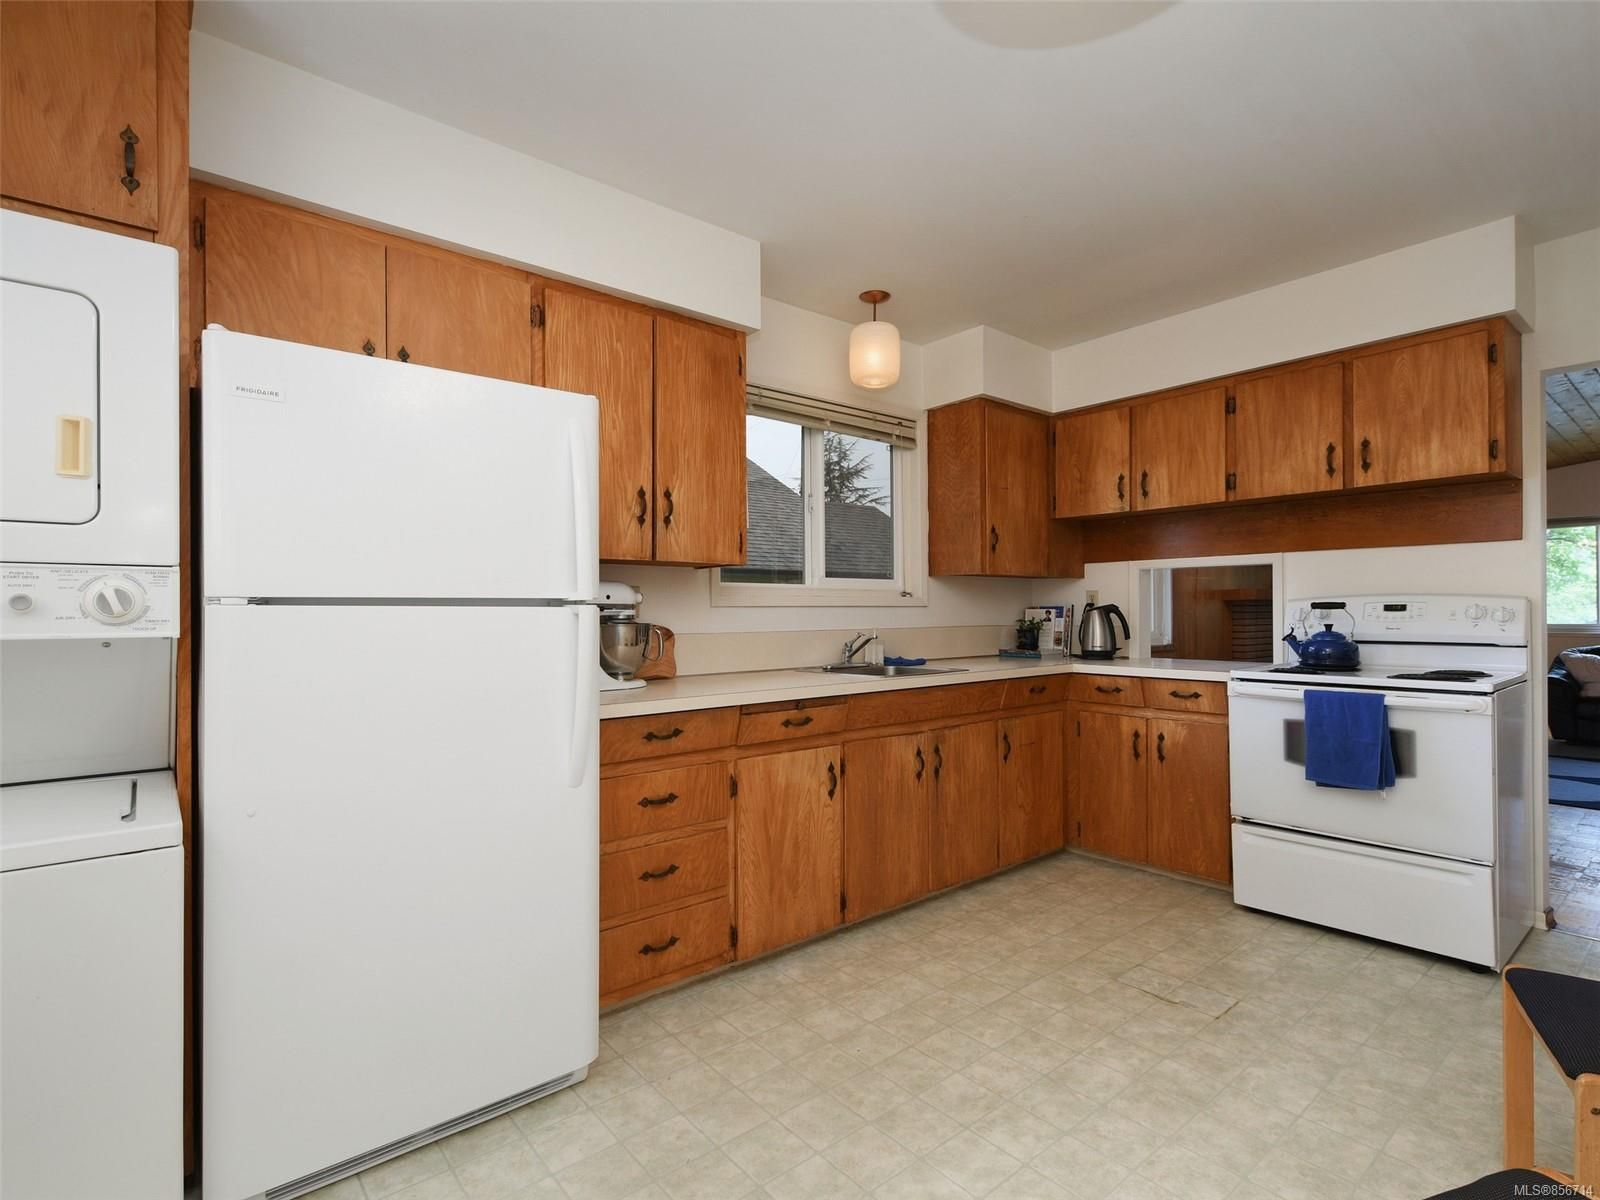 Photo 8: Photos: 3909 Ansell Rd in : SE Mt Tolmie House for sale (Saanich East)  : MLS®# 856714